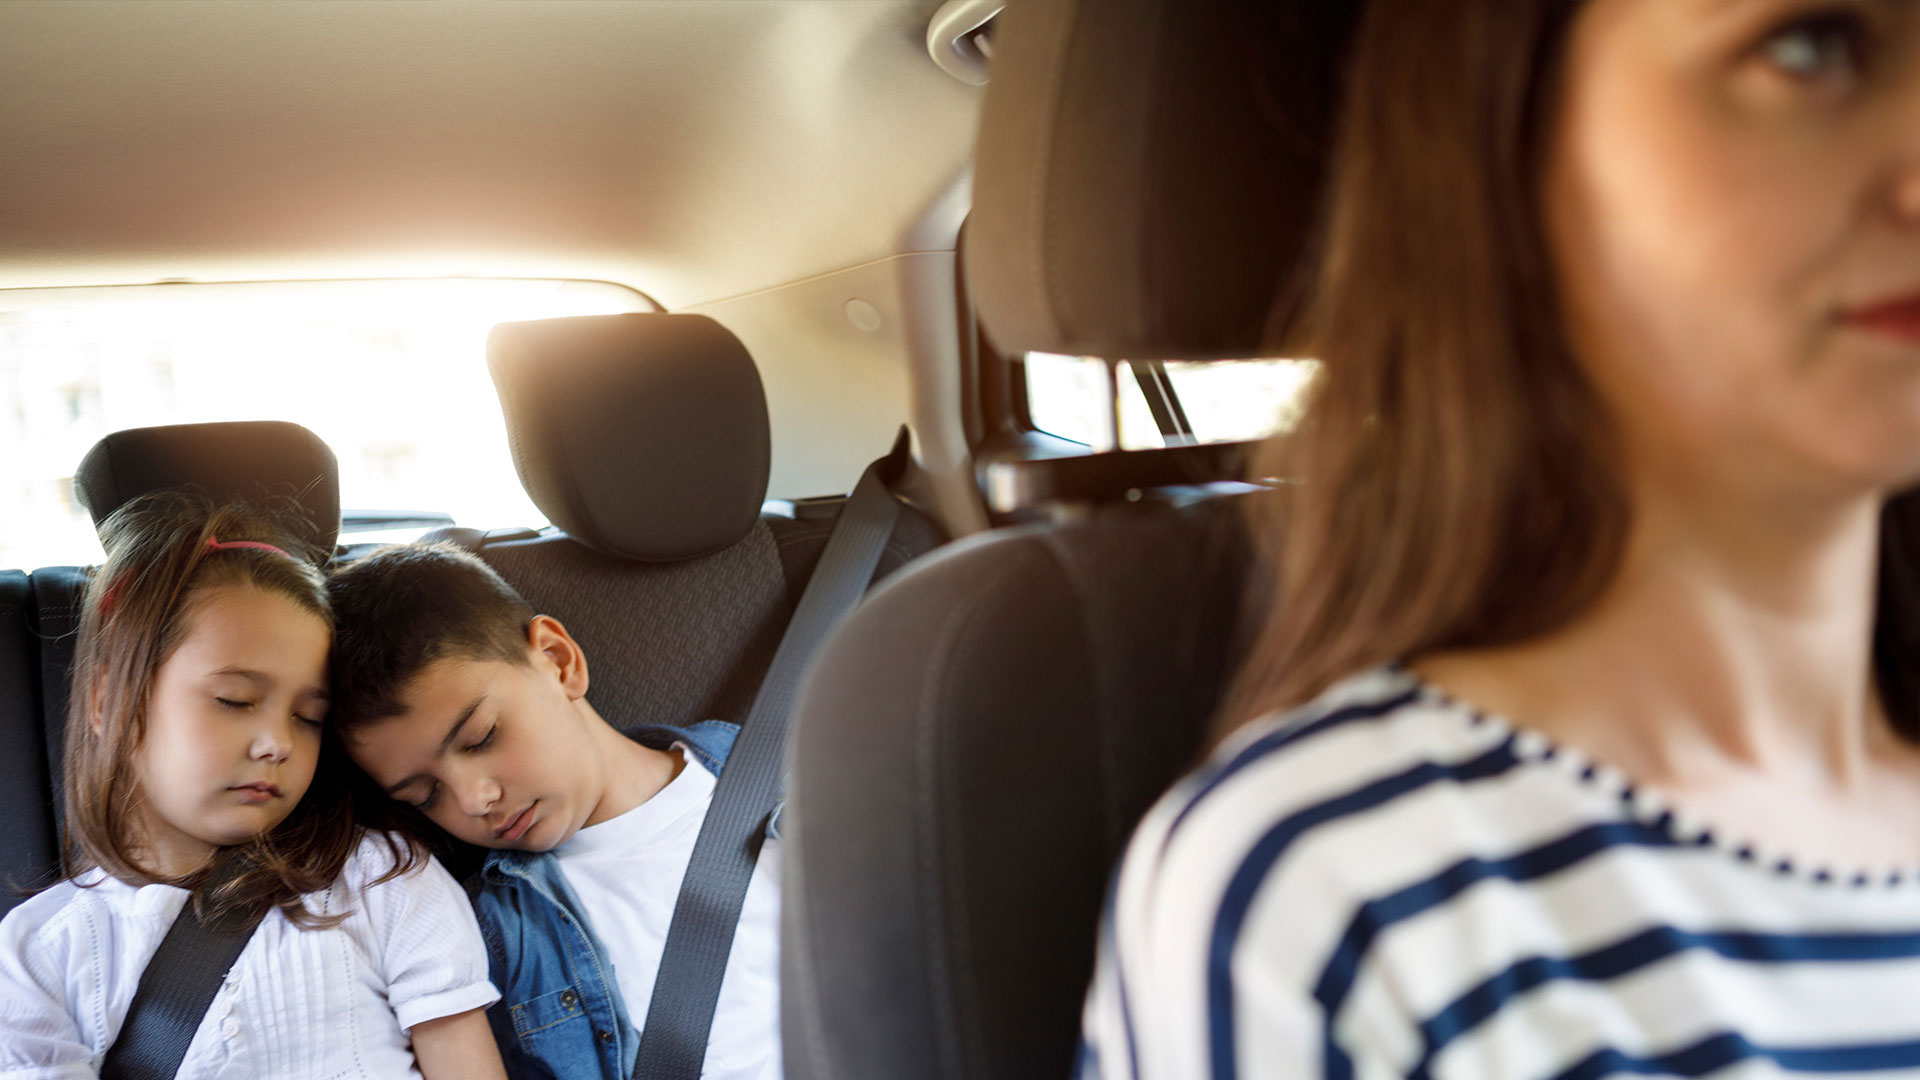 Kids sleeping in the backseat of a car